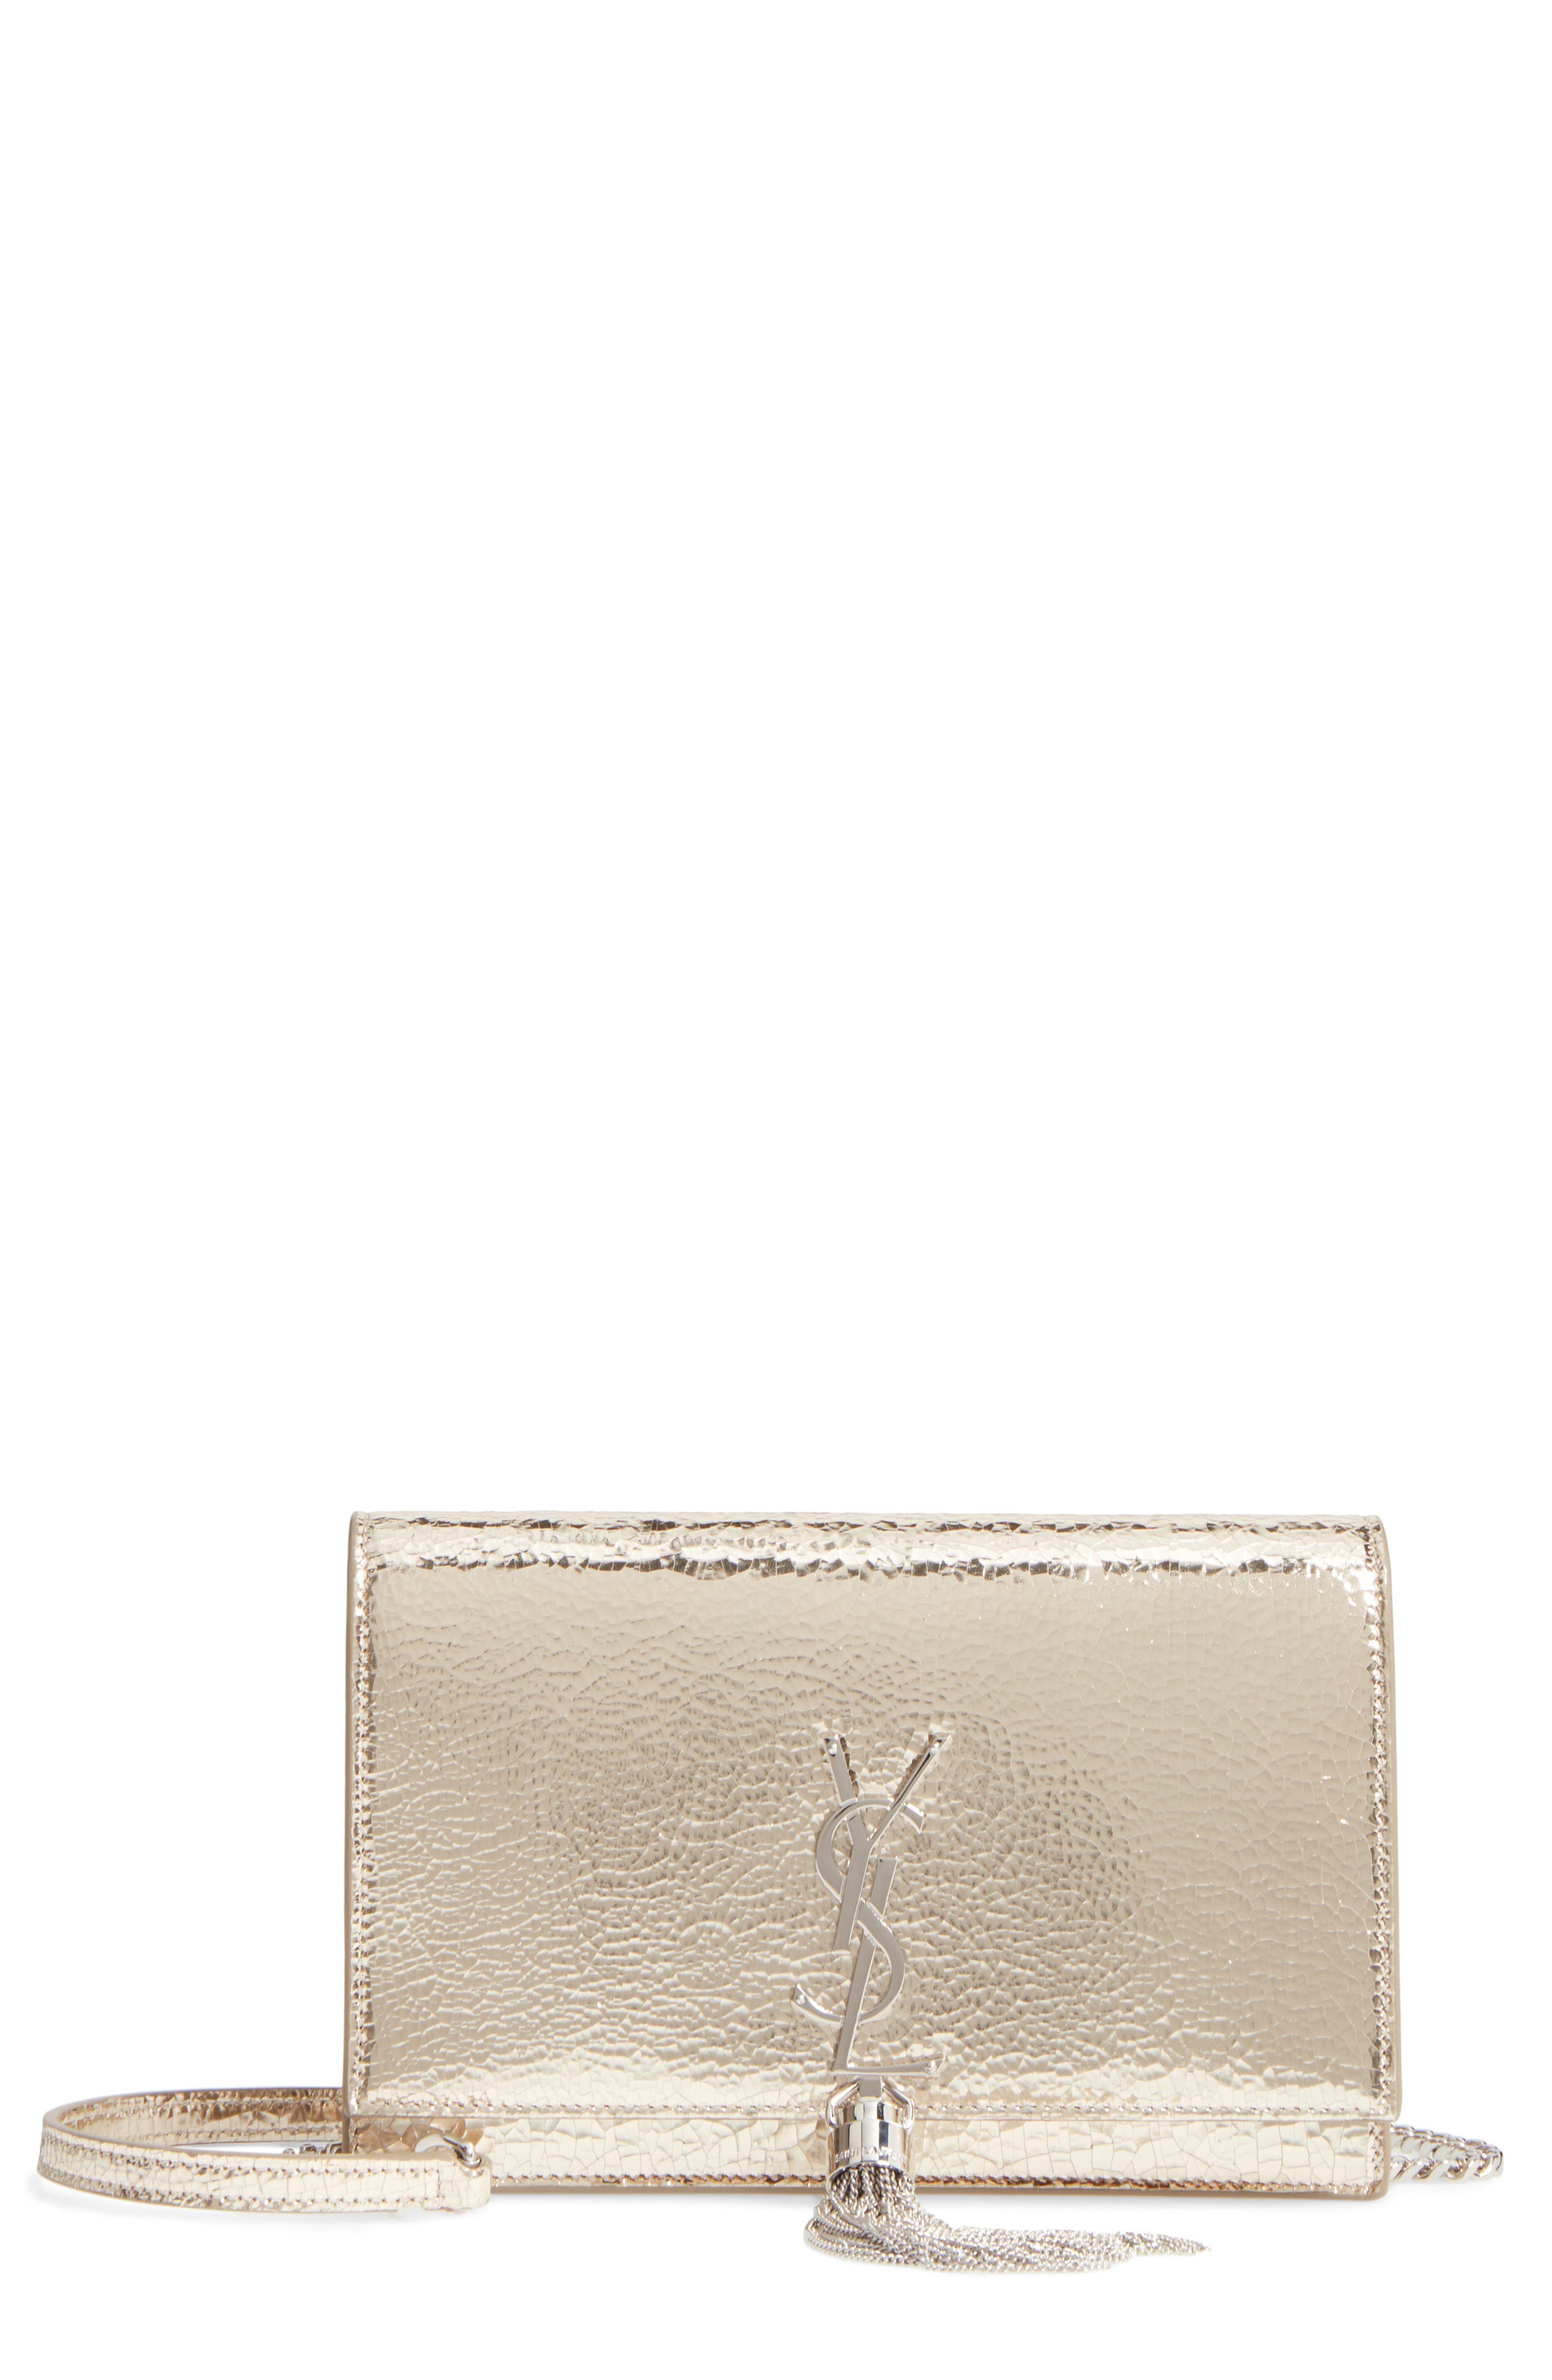 Alternate Image 1 Selected - Saint Laurent Kate Crackle Calfskin Wallet on a Chain